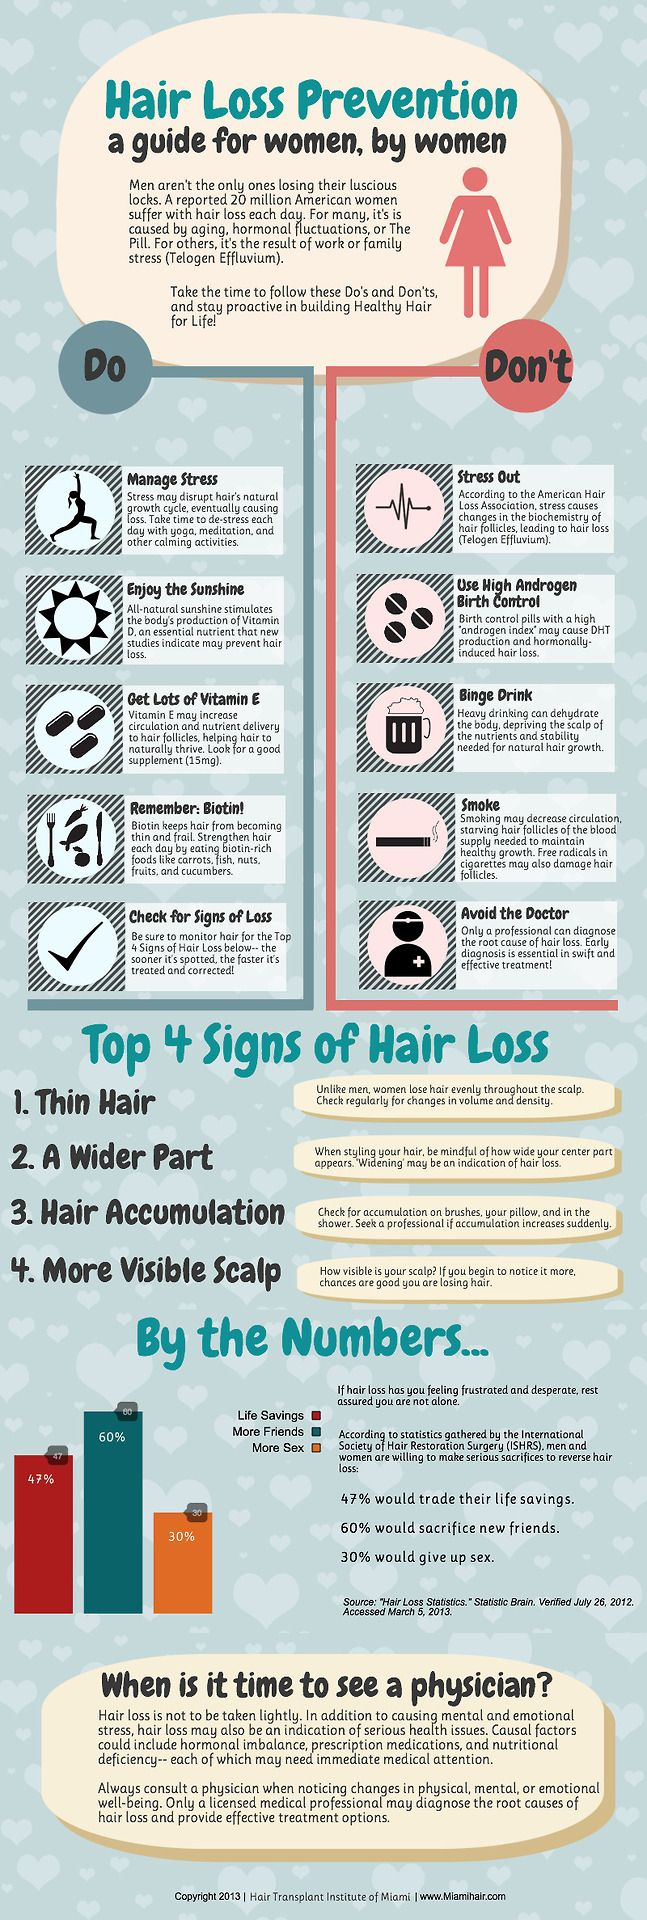 Hair Loss Prevention: a guide for women, by women